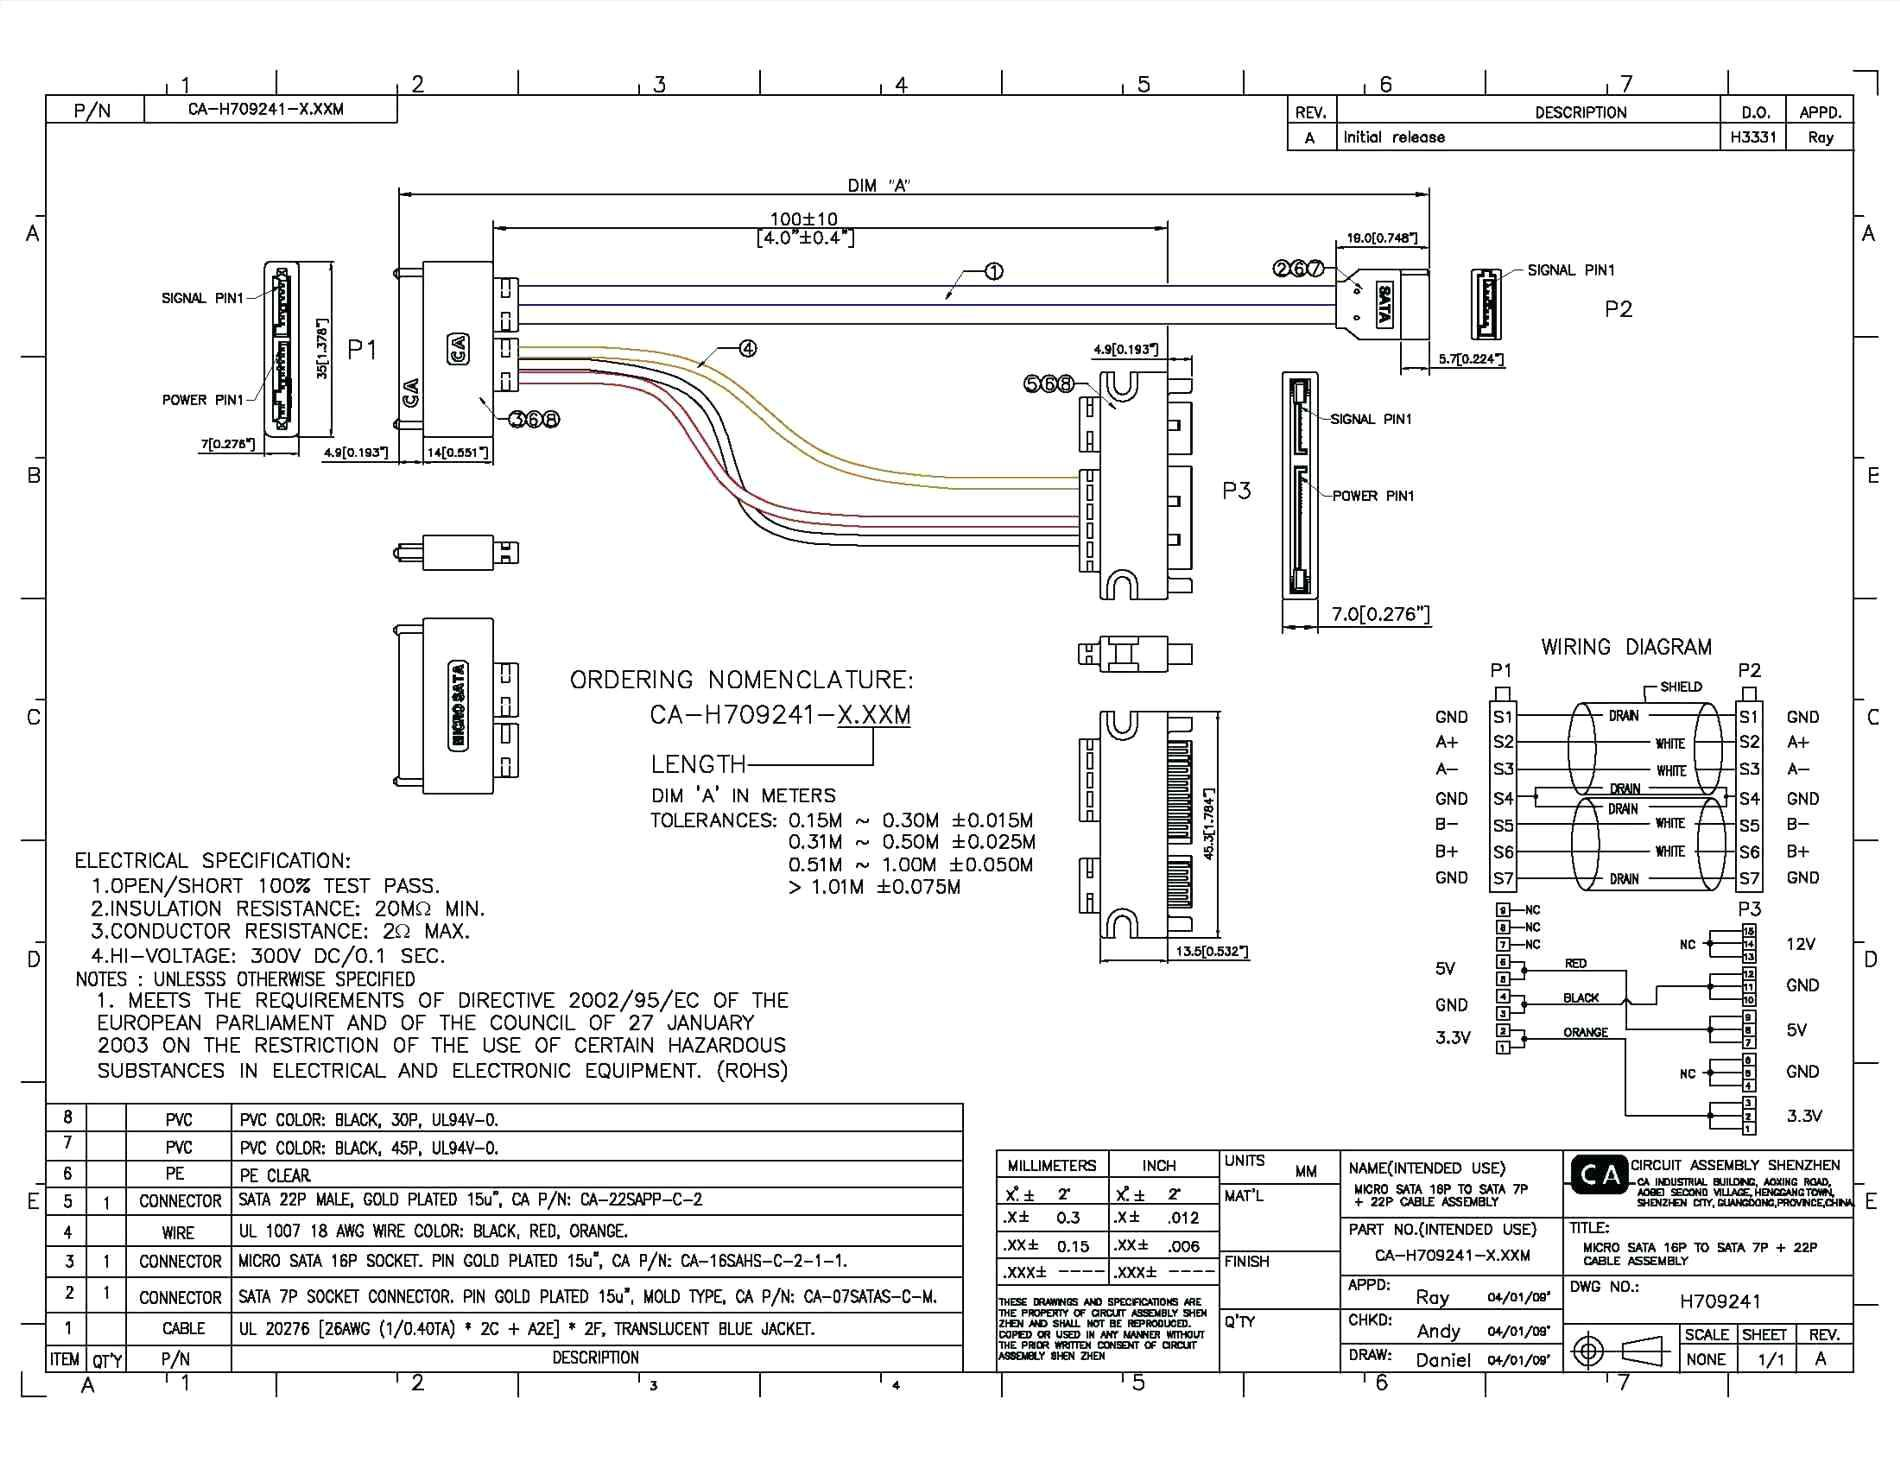 Sata to Usb Cable Wiring Diagram Copy Usb Serial Wiring Diagram I to Usb To Rca Jack Wiring Diagram on midi to usb wiring-diagram, usb keyboard wiring-diagram, usb cord wiring diagram, usb to usb wiring-diagram, usb charger wiring diagram, usb to rs232 wiring-diagram, usb to db9 wiring-diagram, micro usb wiring-diagram, usb to rj45 wiring-diagram, iphone usb wiring-diagram, usb to vga pinout, mini usb wiring-diagram, usb to ps2 wiring diagram, ipod to usb wiring-diagram, usb connection wiring diagram, usb cable wiring connections, usb pinout color code, usb pinout diagram, usb 3.0 wiring-diagram,